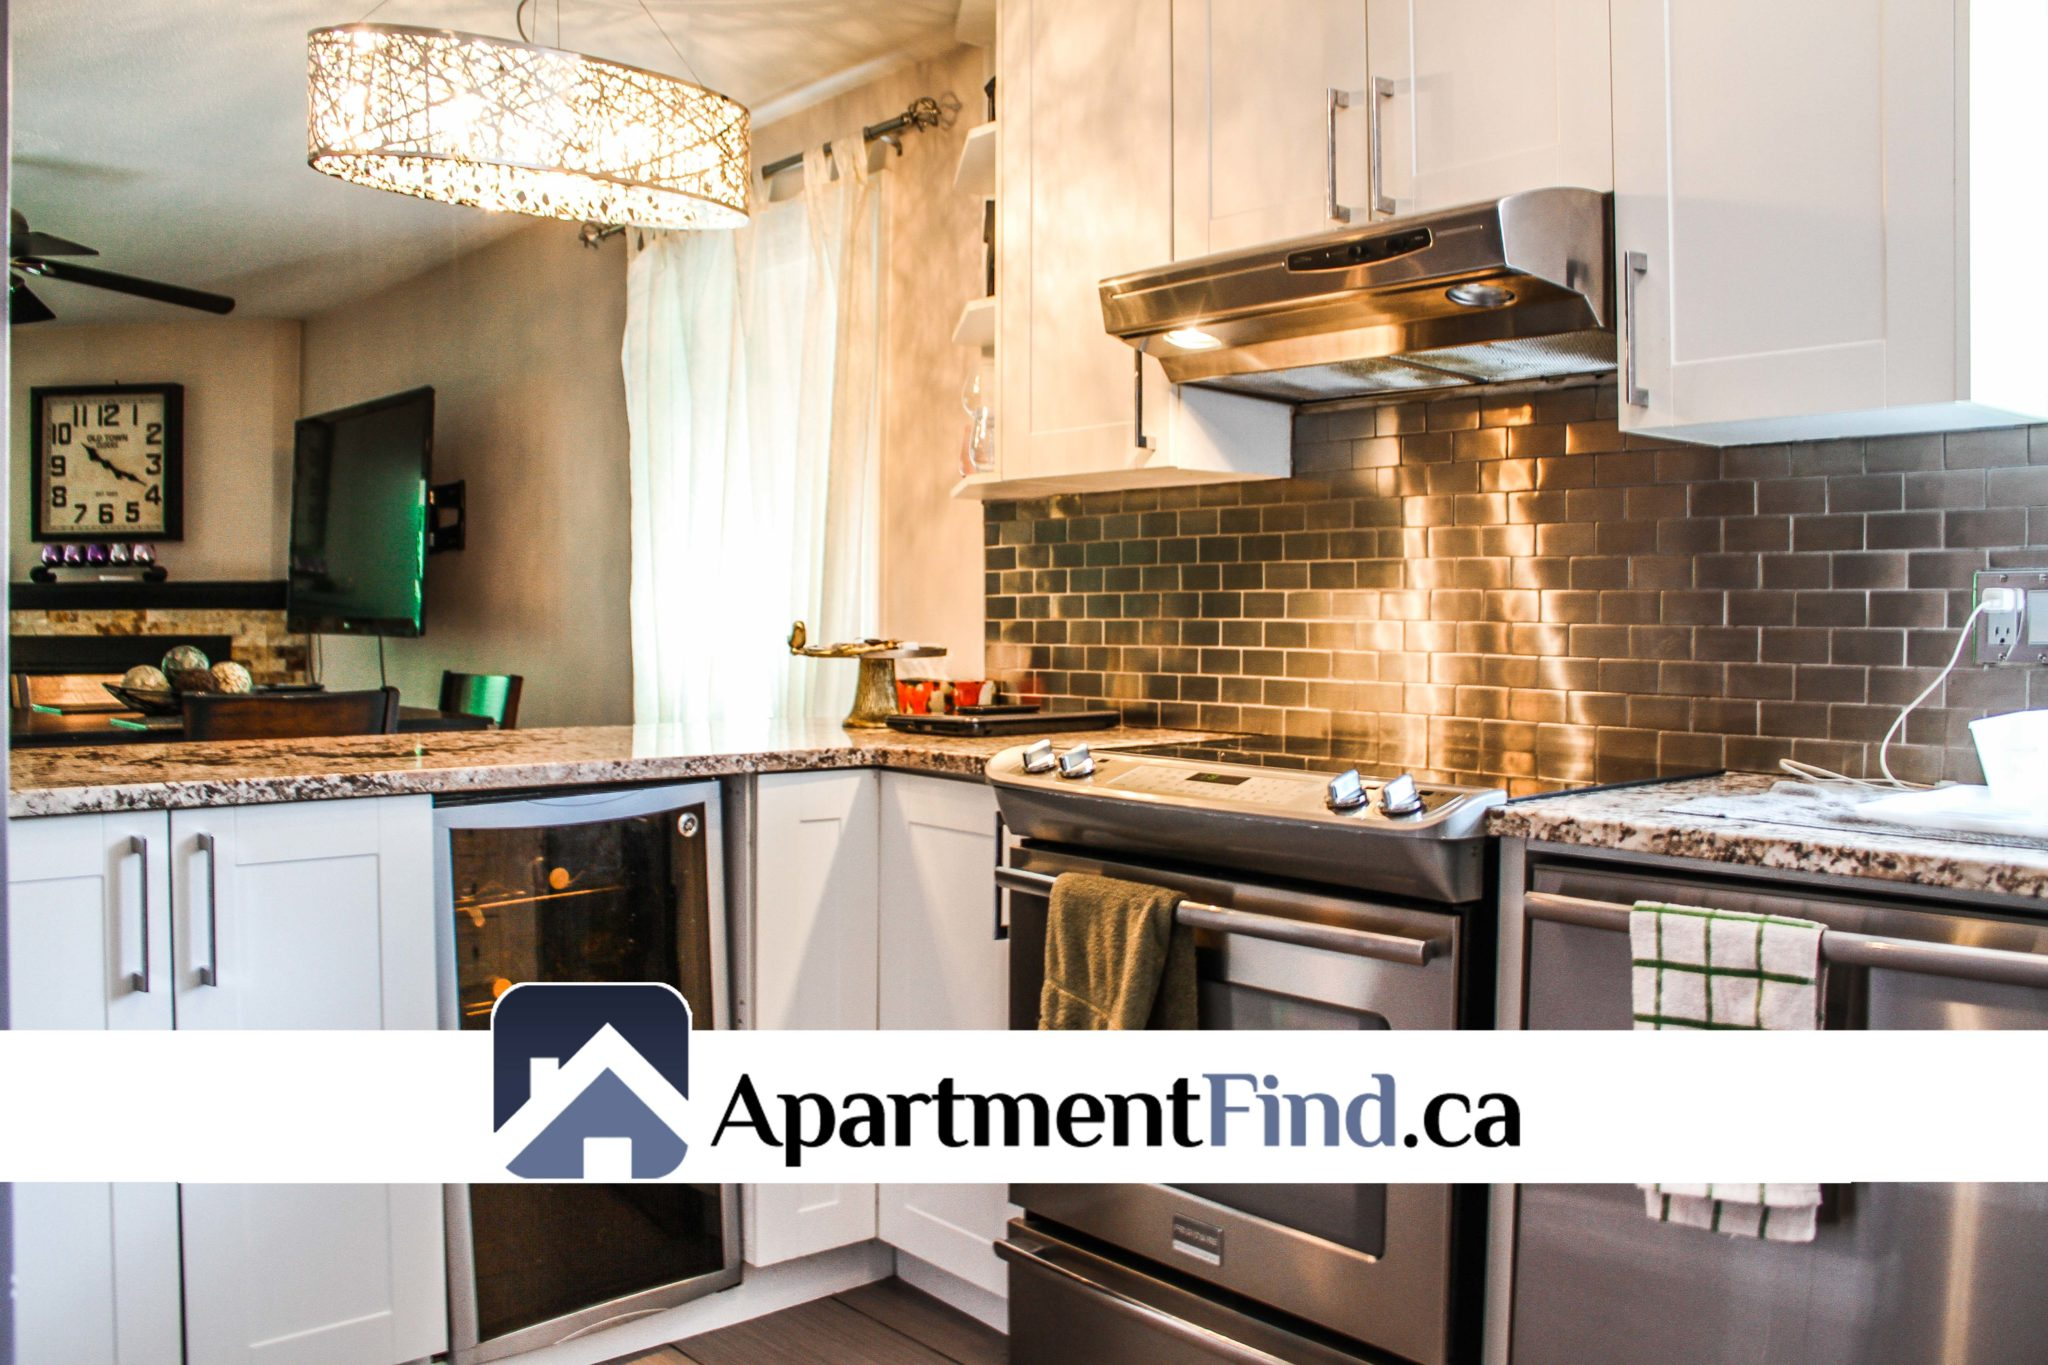 Kitchen of this Condo for rent in Orleans at 6625 Bilberry Drive #A (Orléans) - 1895$